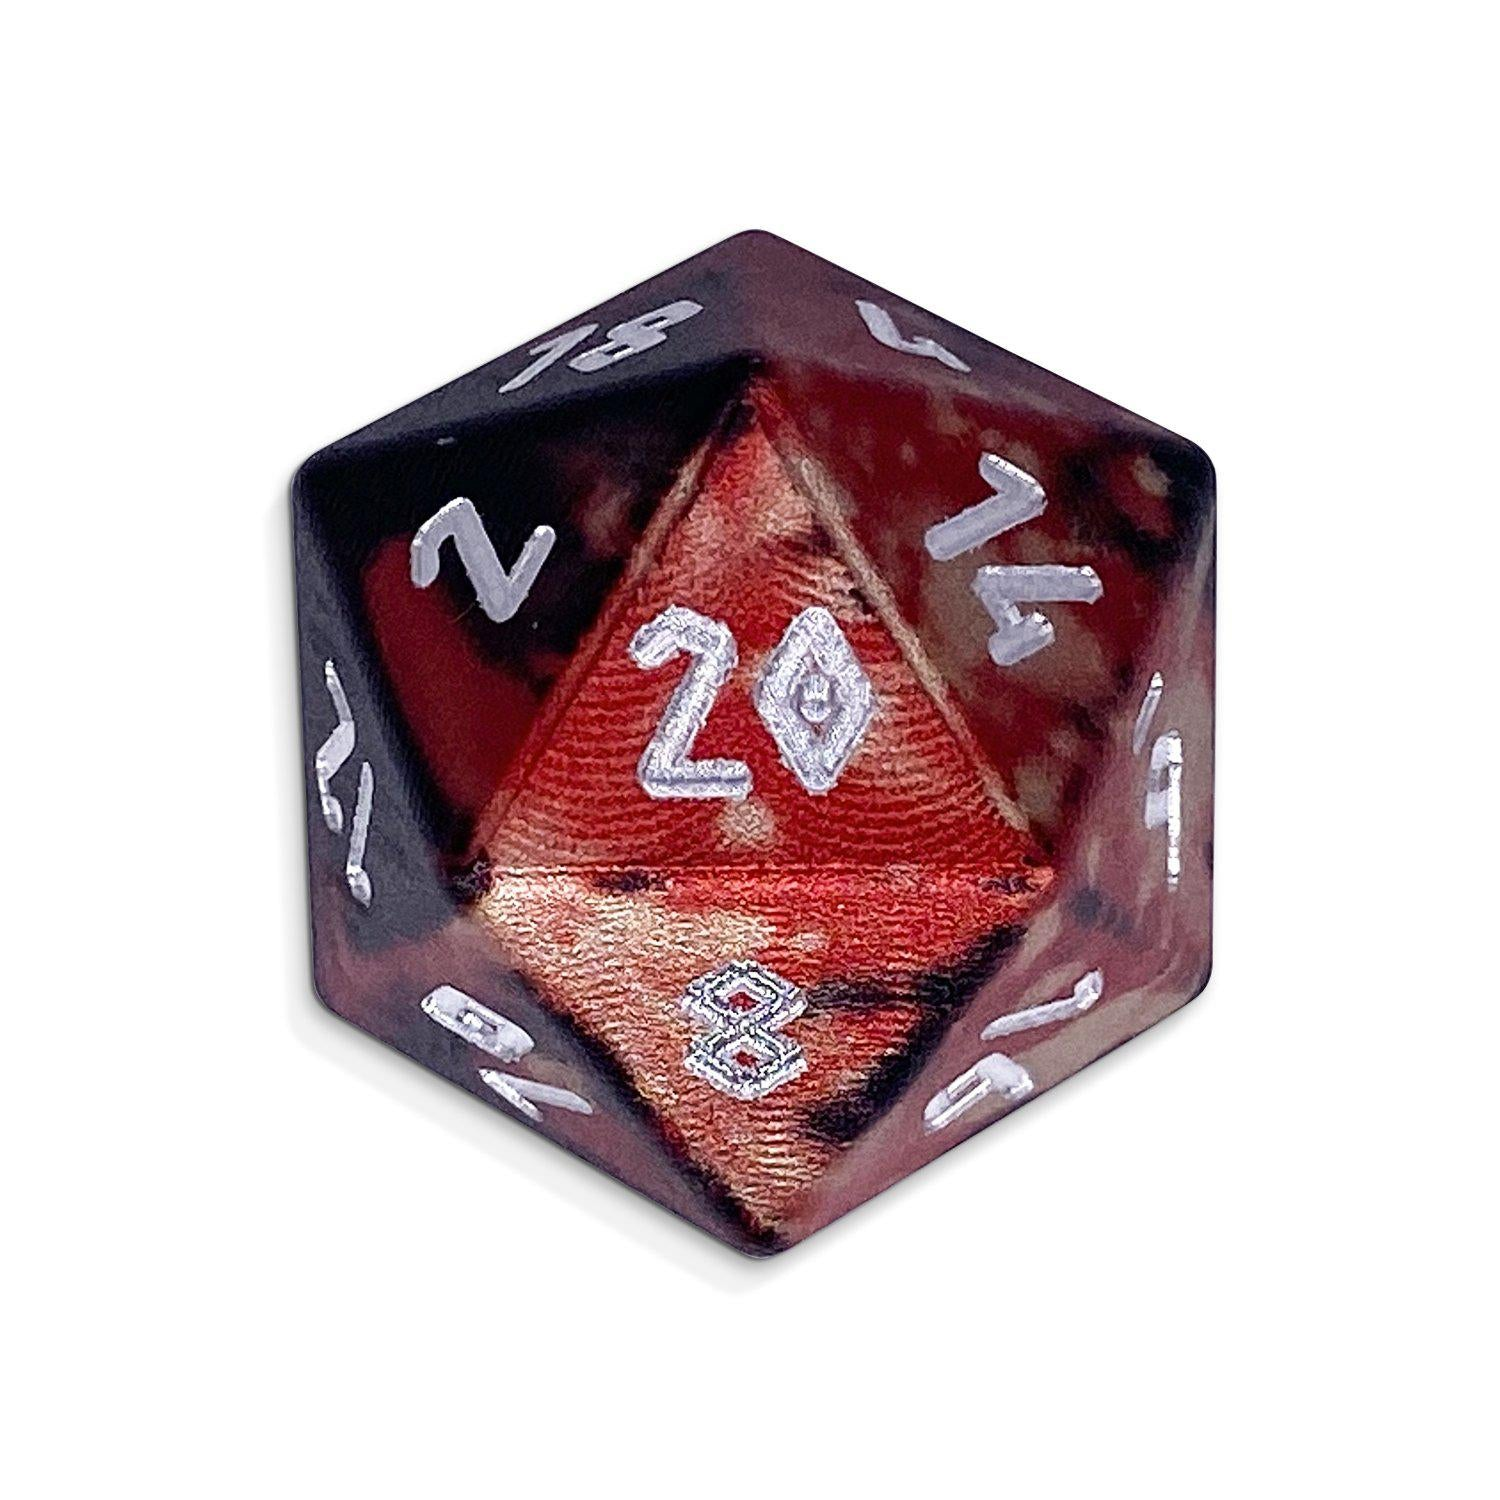 Single Wondrous Dice® D20 in Vampire Lord by Norse Foundry® 6063 Aircraft Grade Aluminum